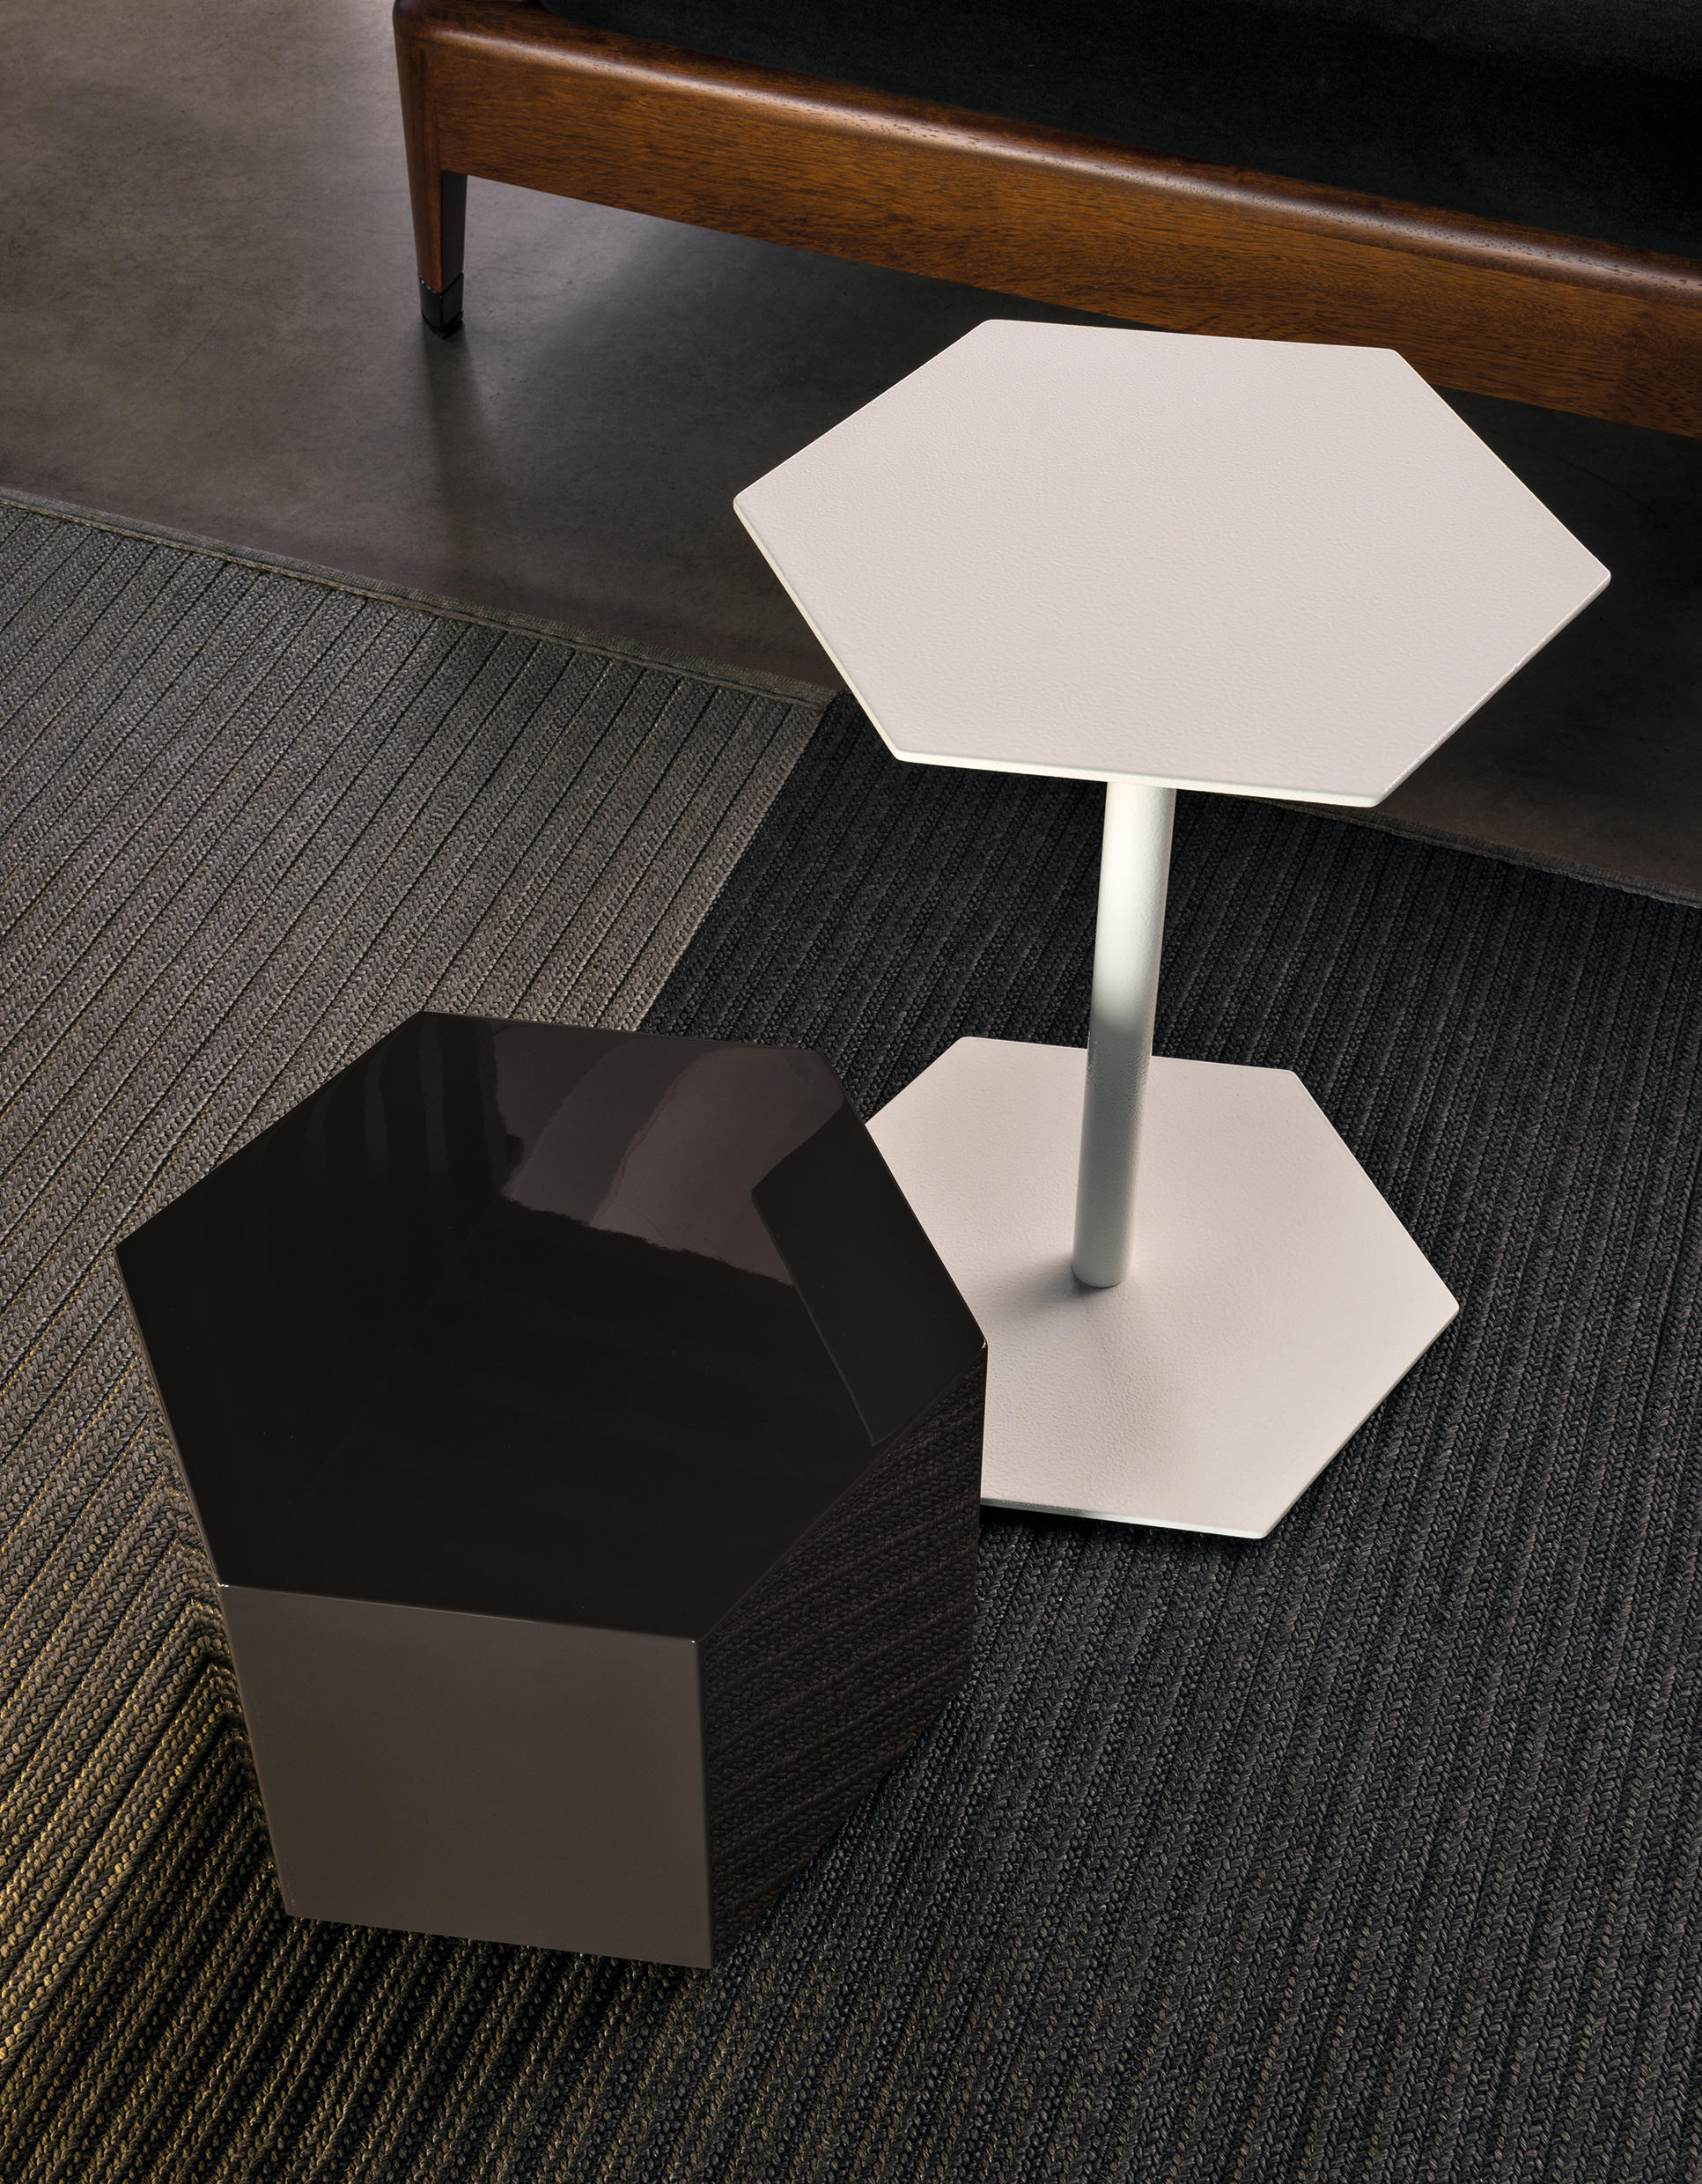 BRISLEY OUTDOOR ACCENT TABLE Side tables from Minotti